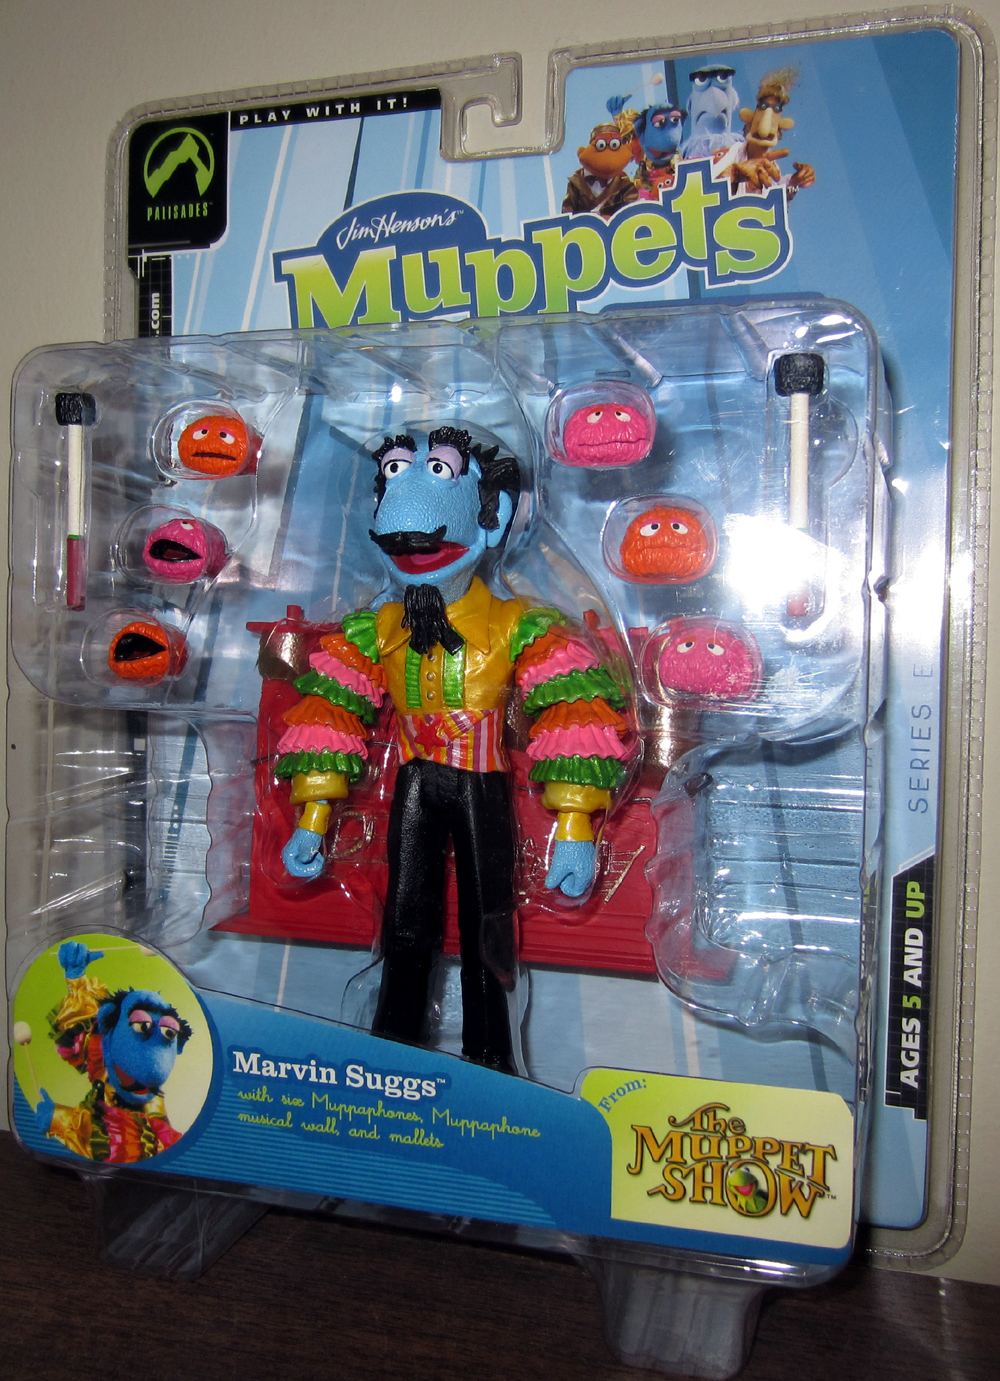 Marvin Suggs (multi-colored shirt)